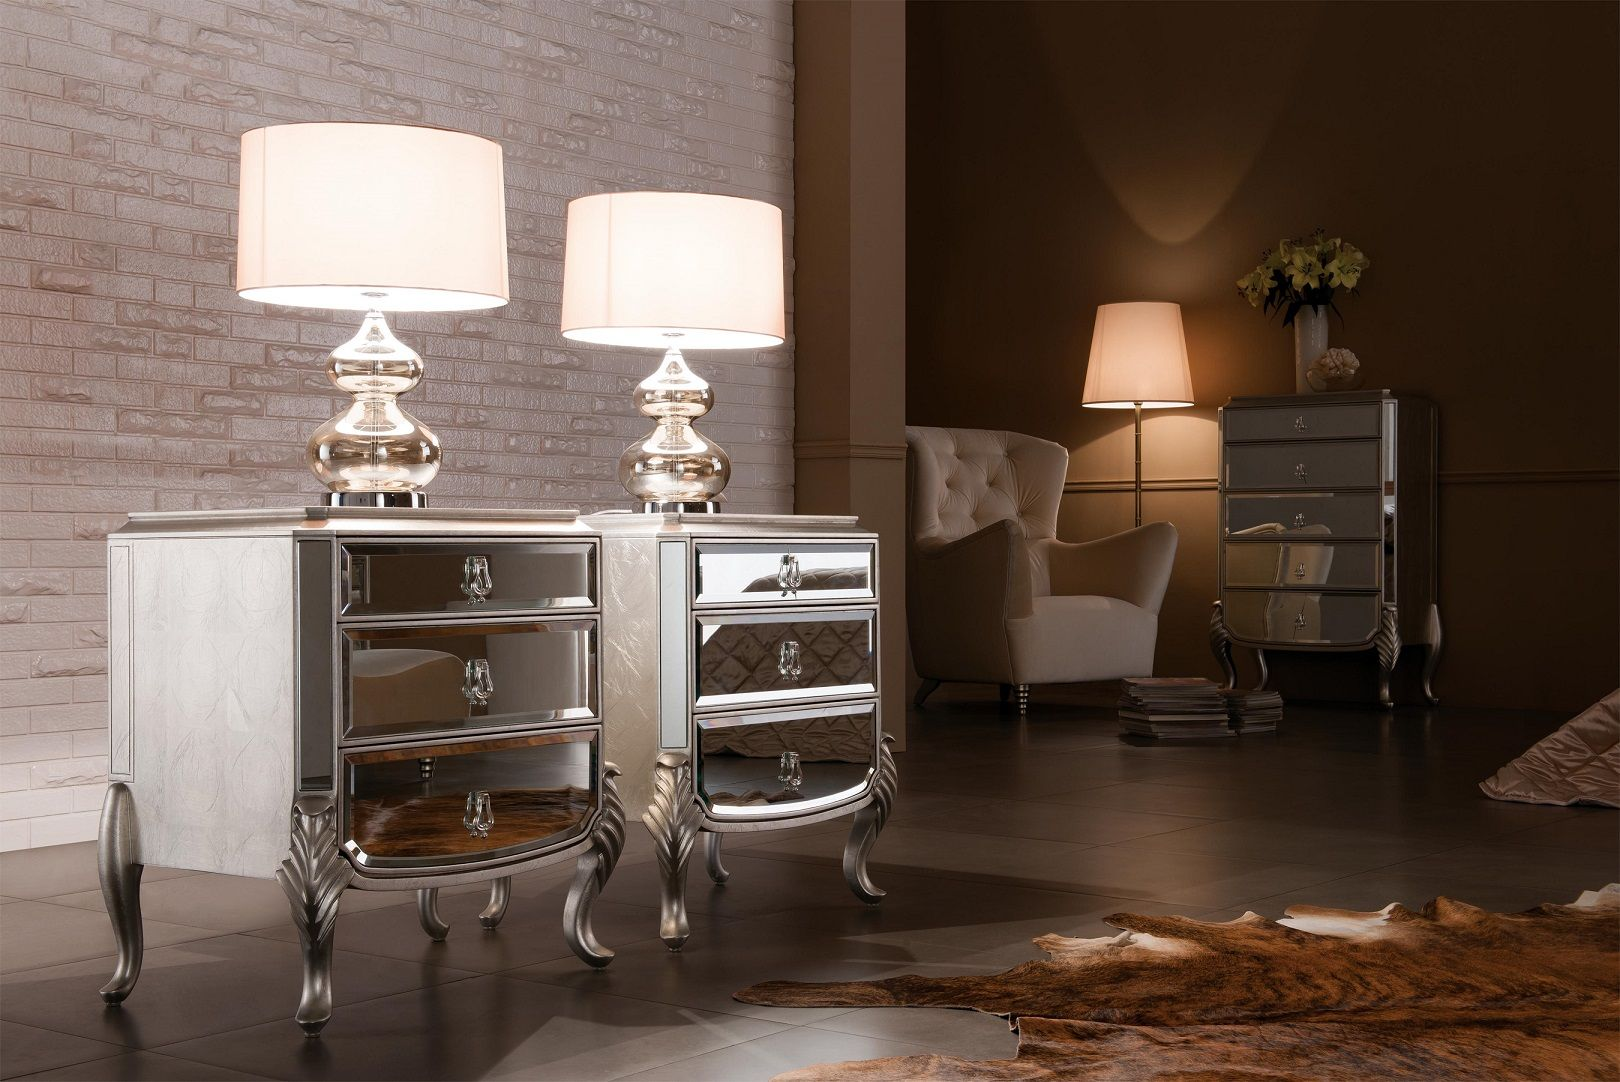 Mirrored Nightstand Florentine 画像あり